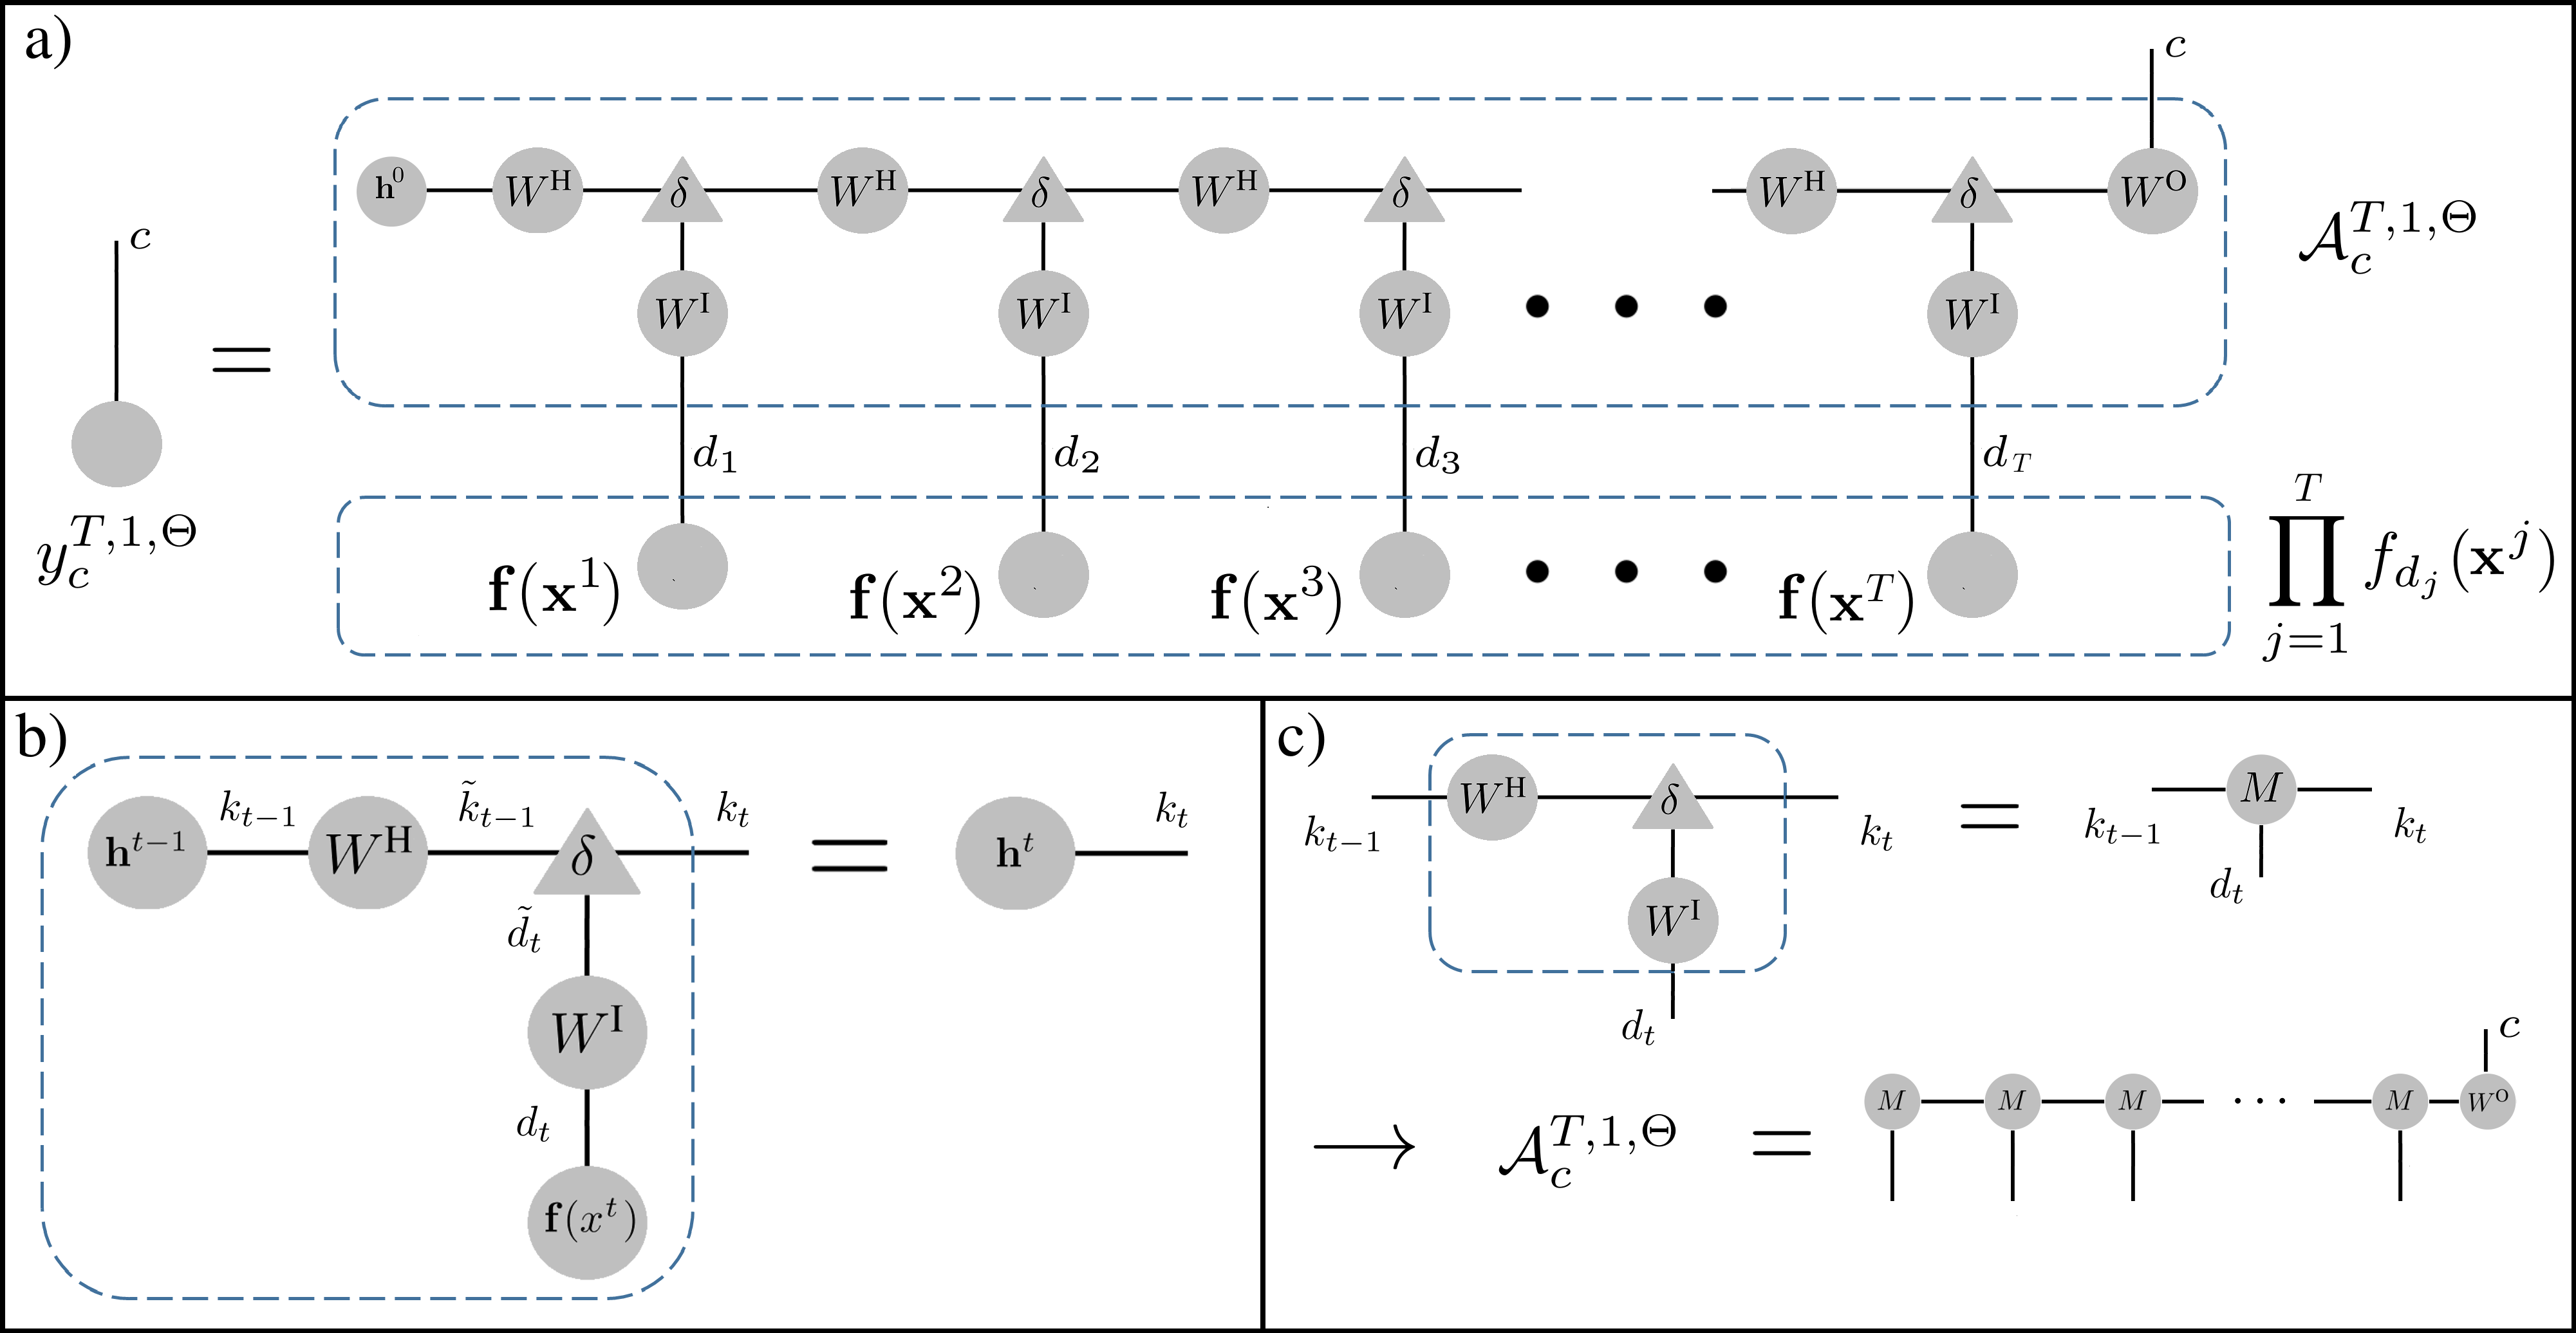 a) The Tensor Network representing the calculation performed by a shallow RAC. b) A Tensor Network construction of the recursive relation given an eq.